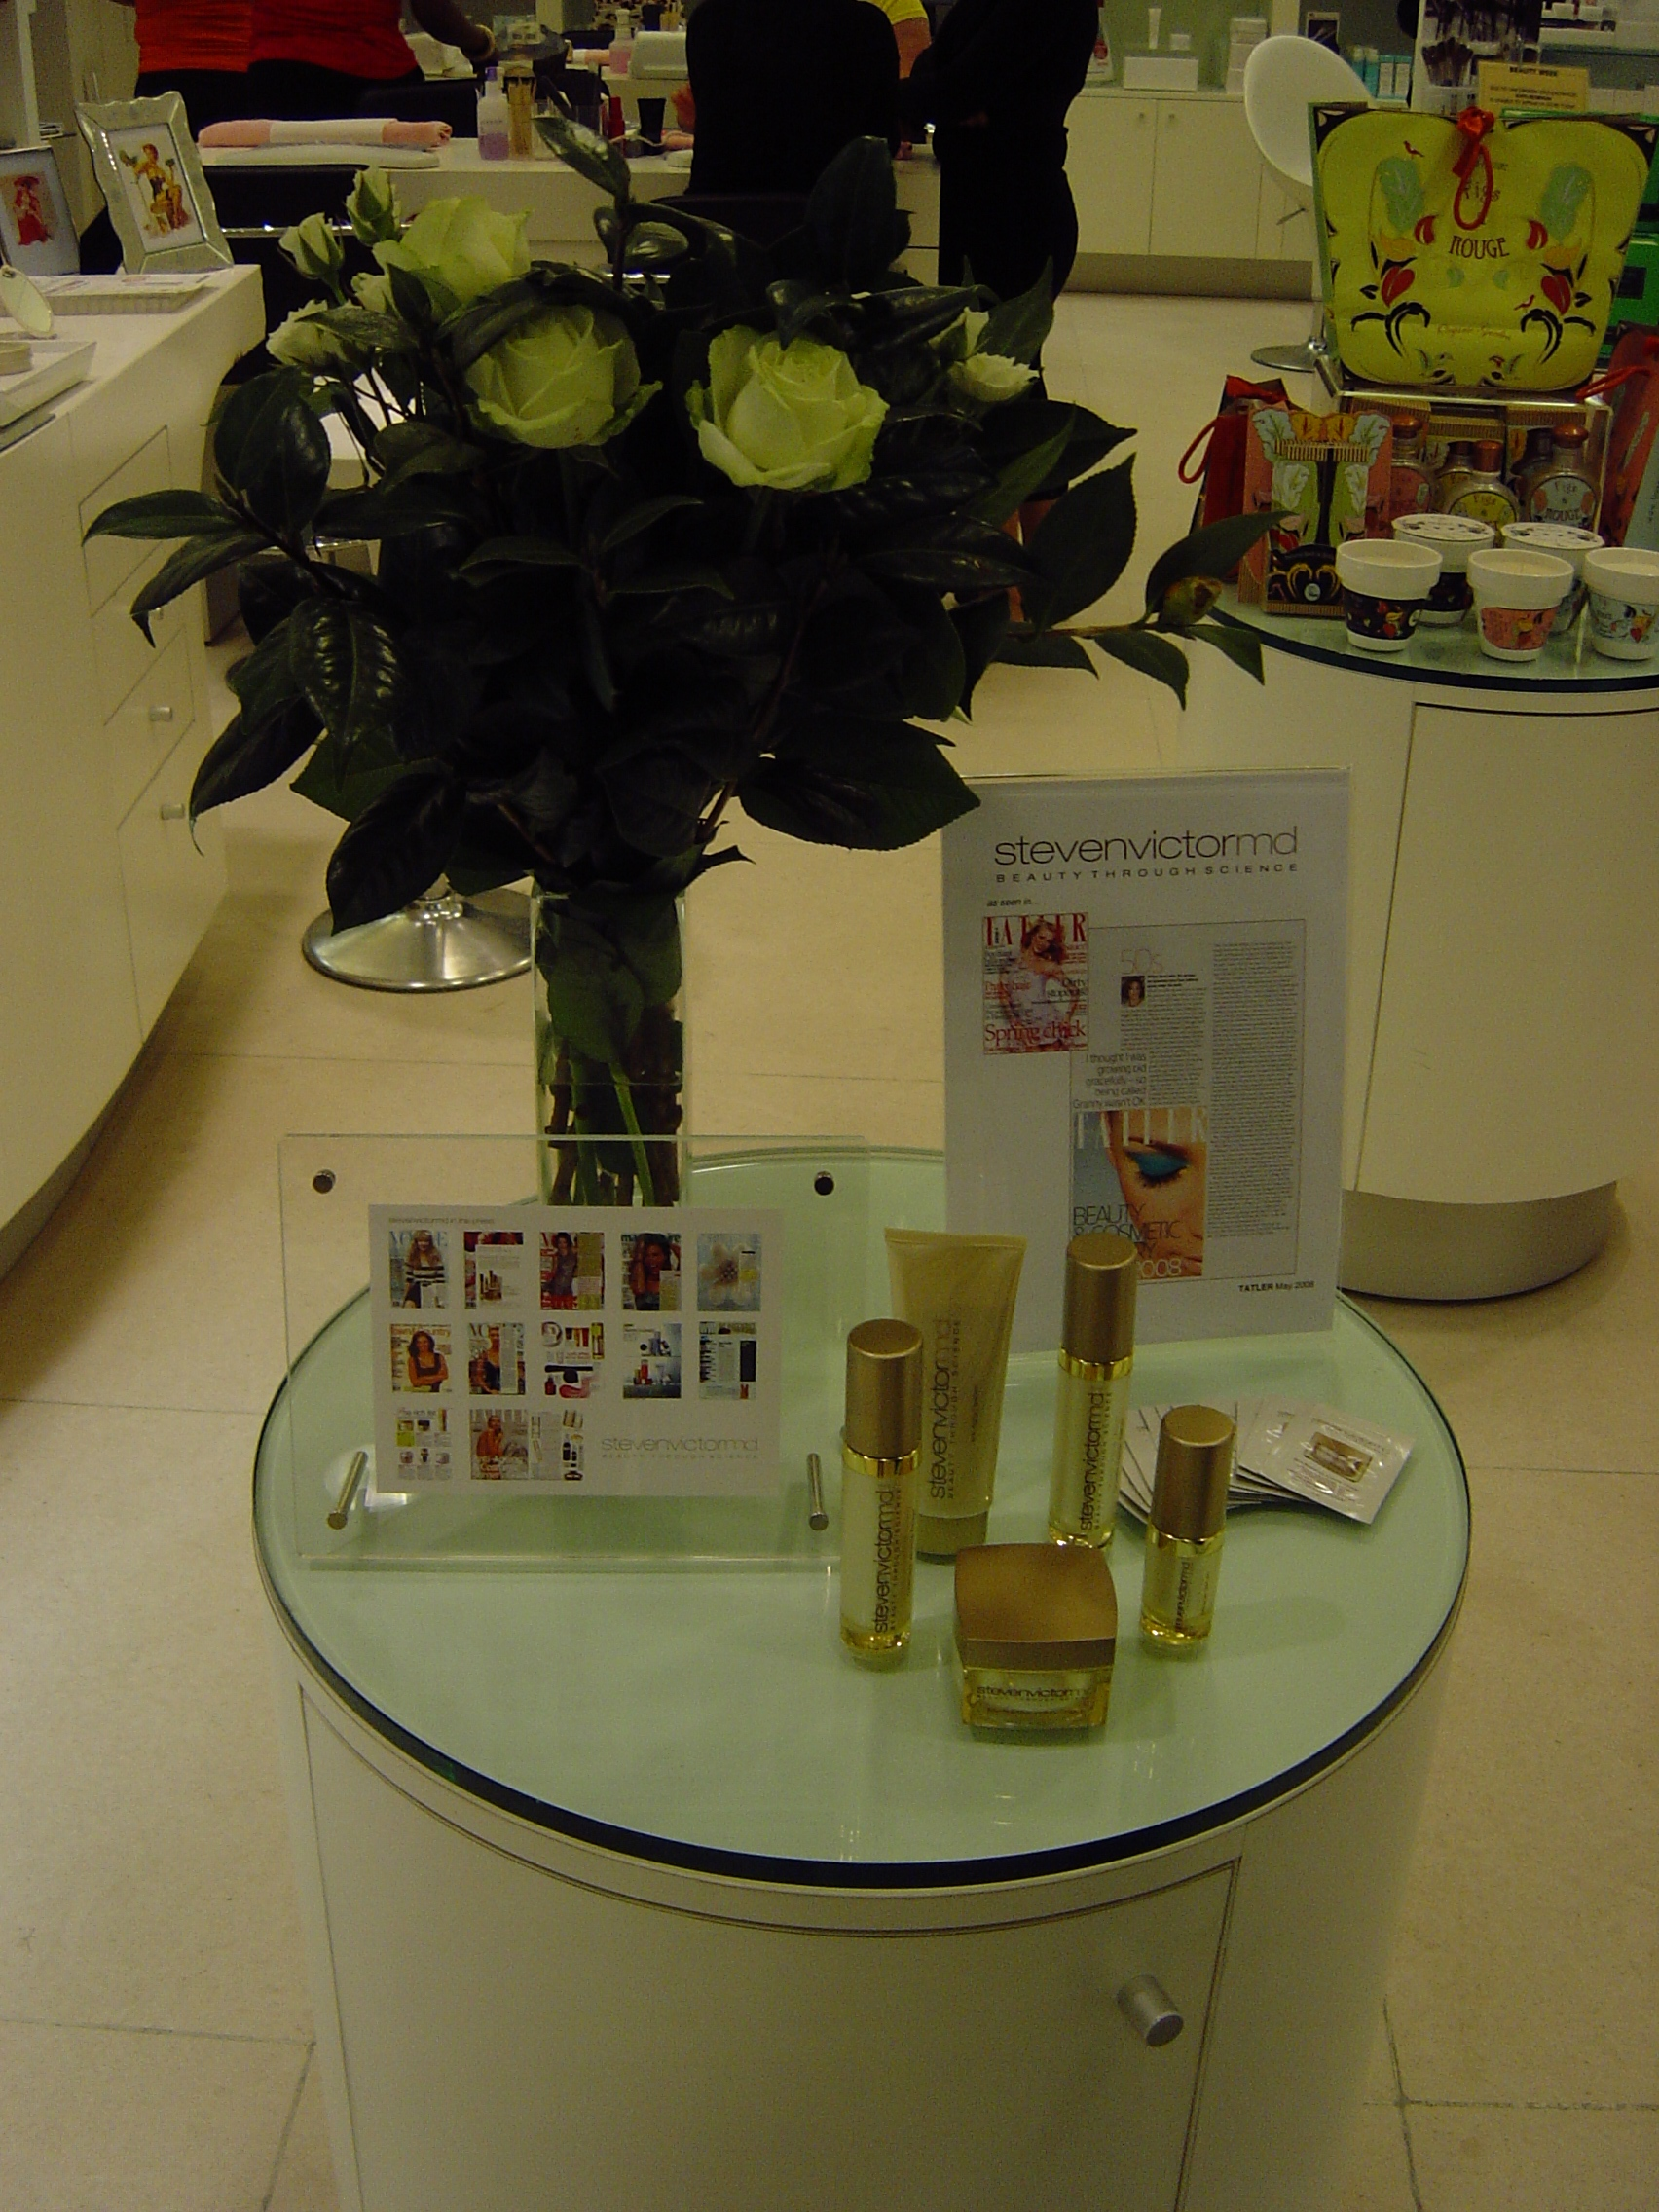 PRODUCTS IN FENWICK NEW BOND STREET